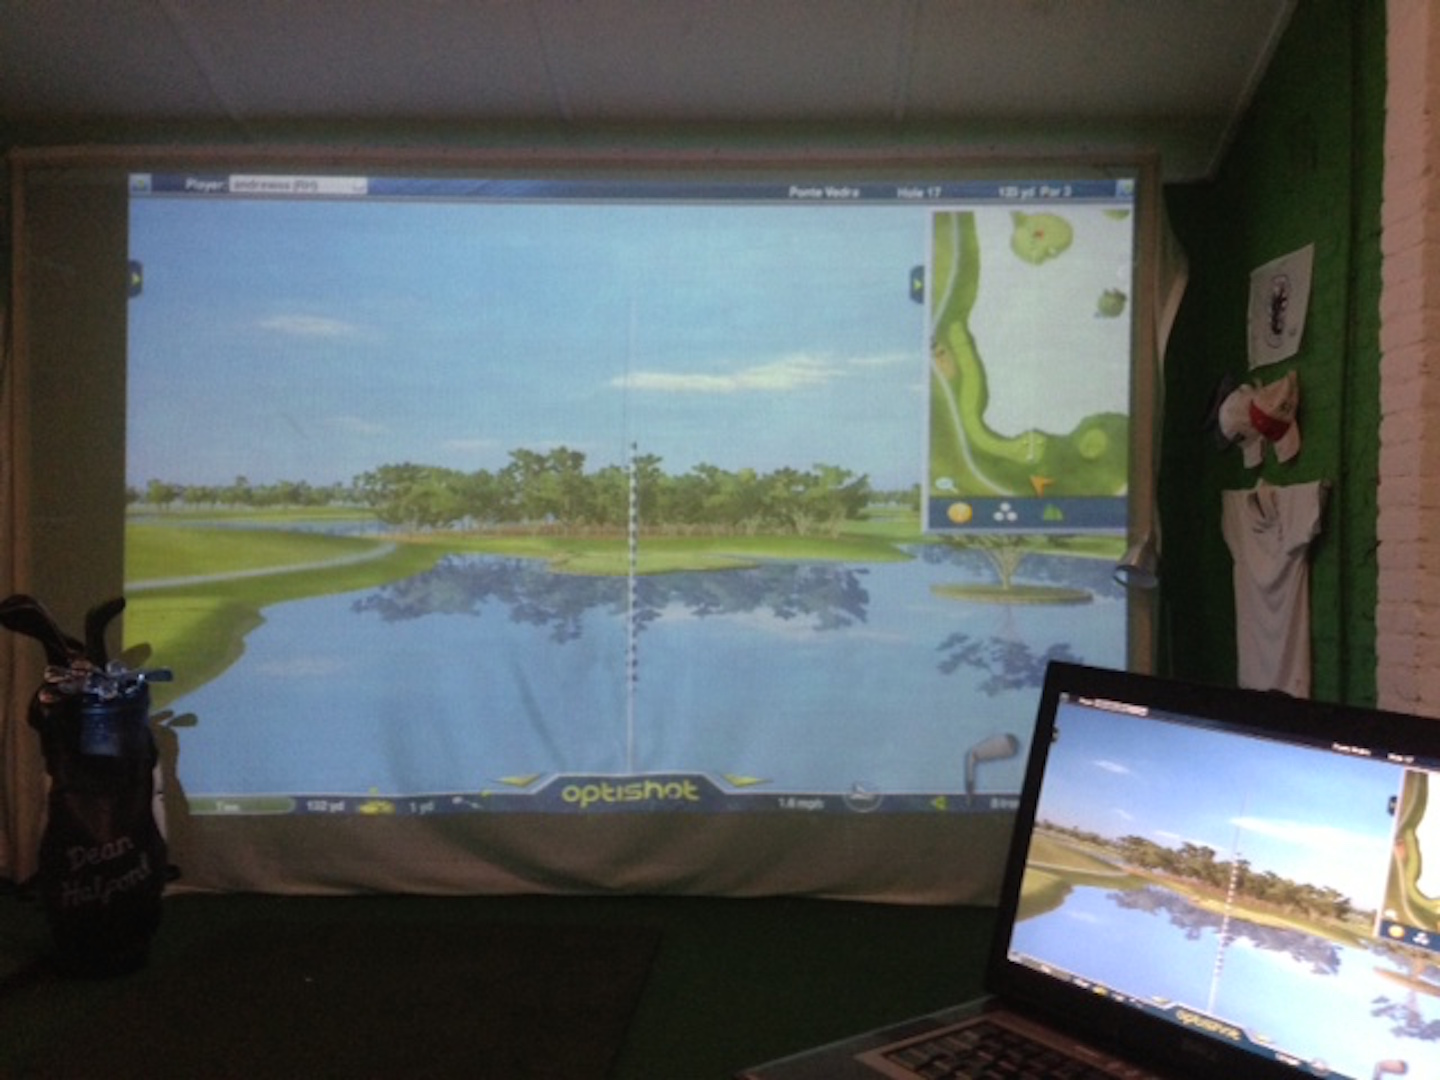 A golf simulator for £400?!